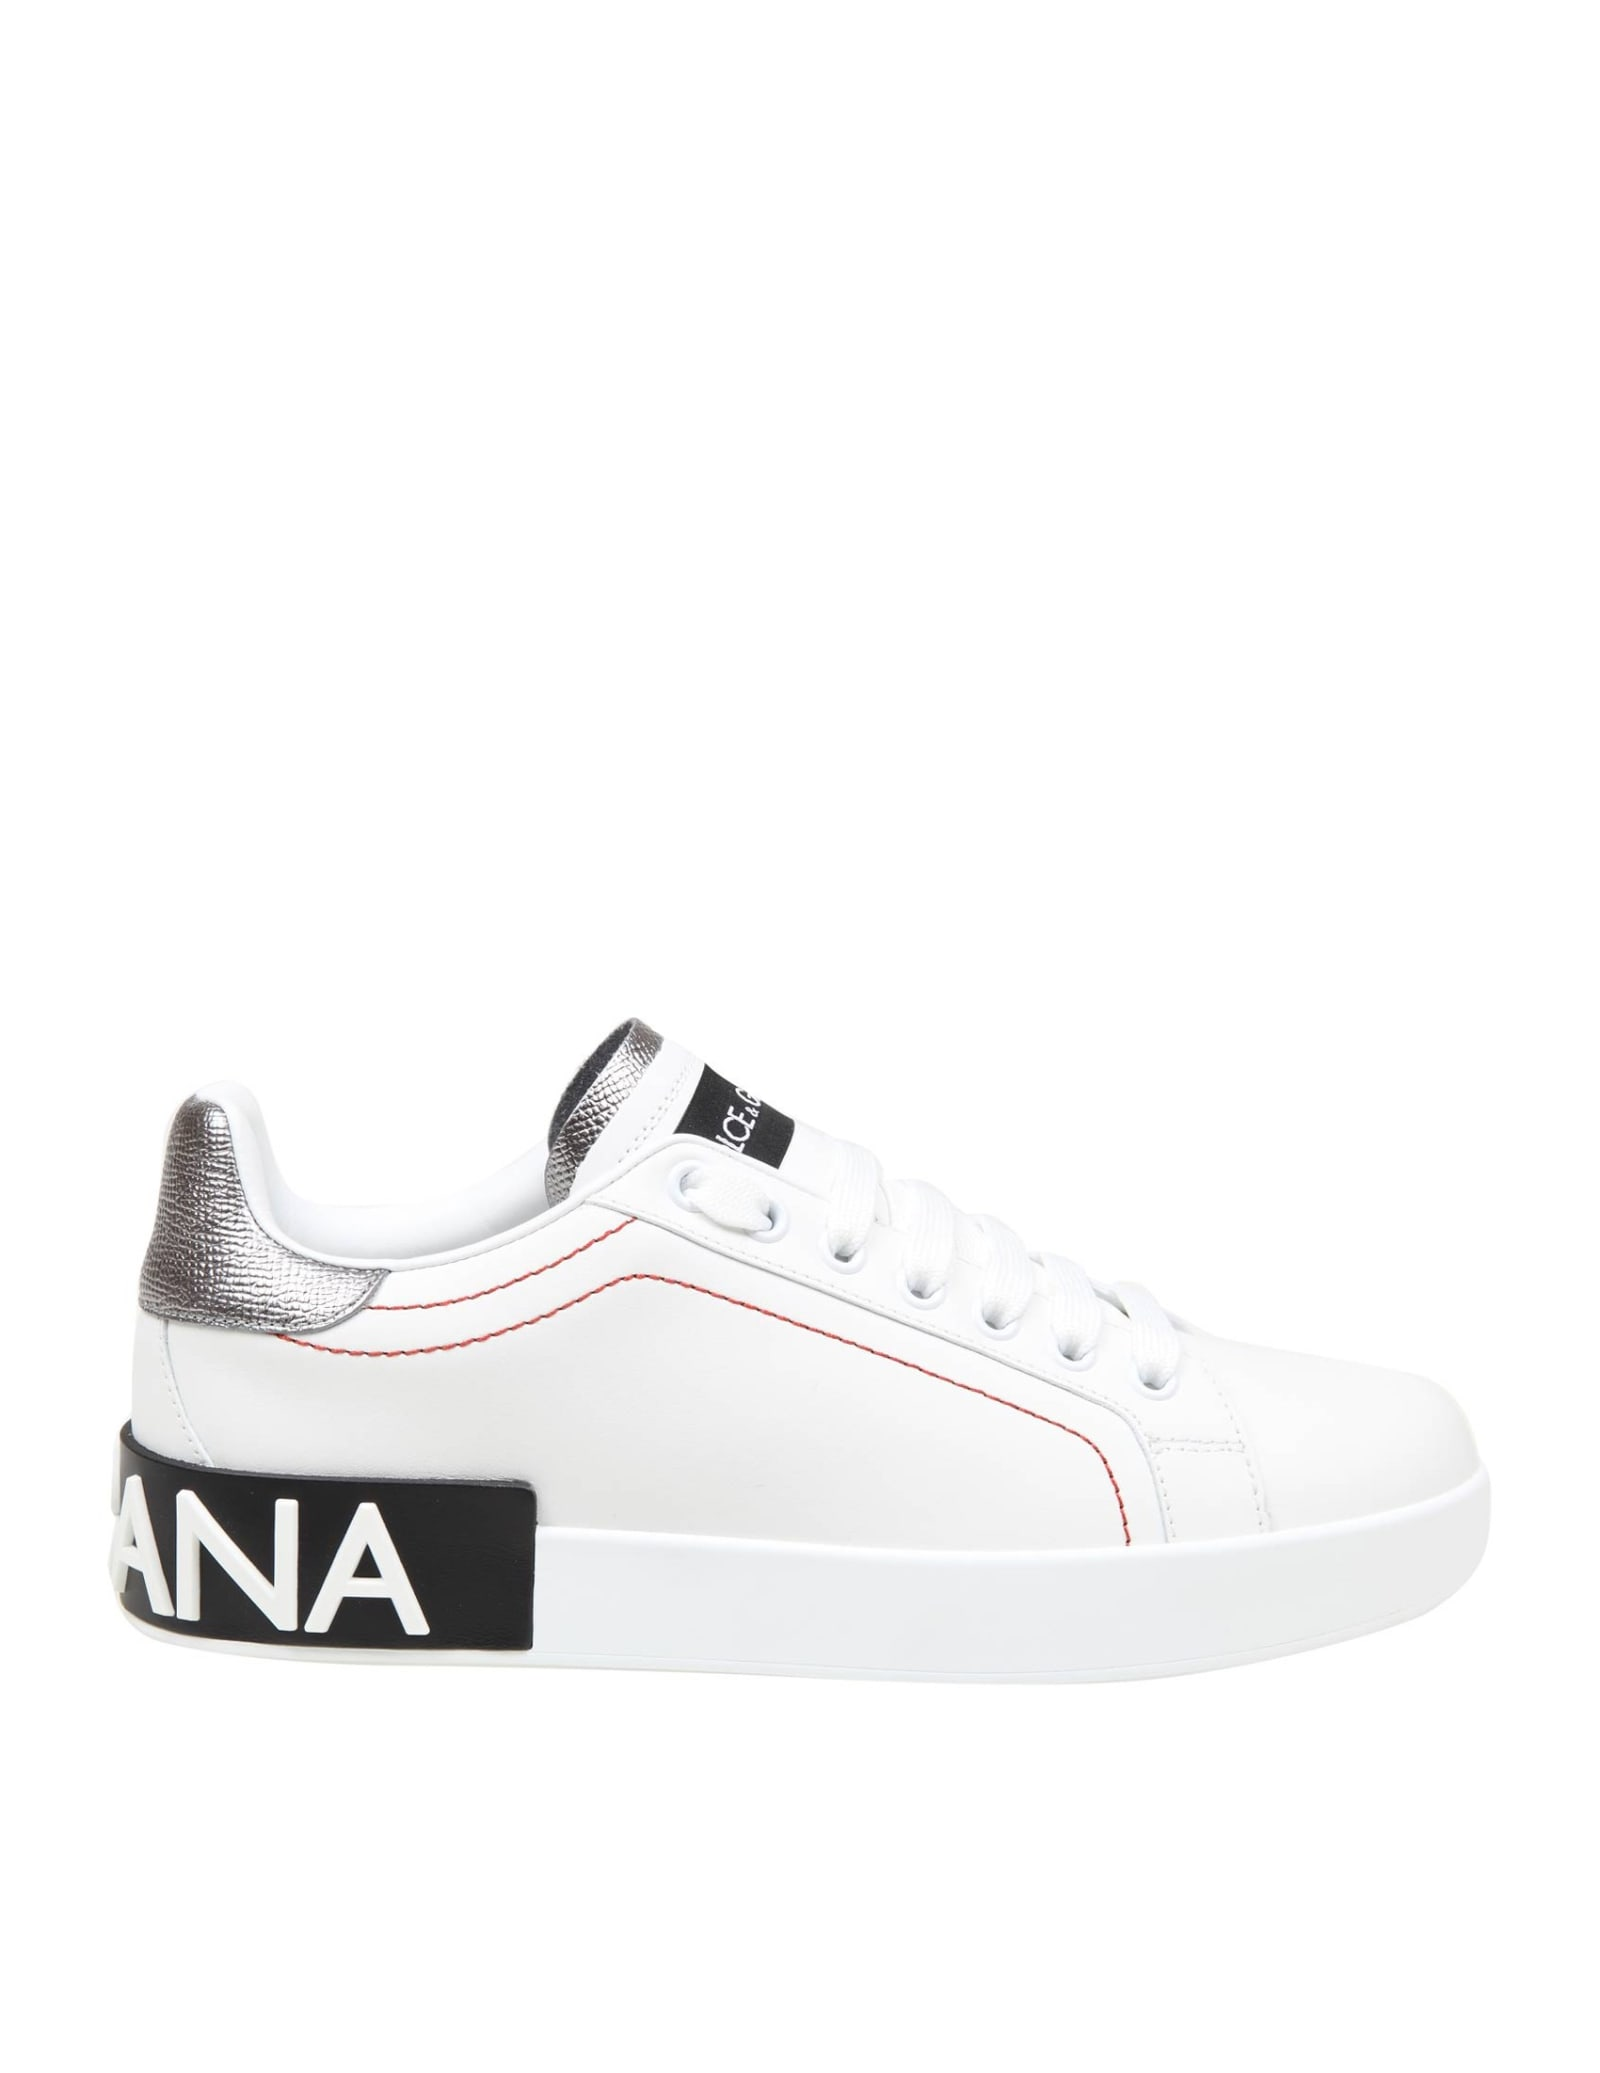 Dolce & Gabbana PORTOFINO SNEAKERS IN WHITE LEATHER